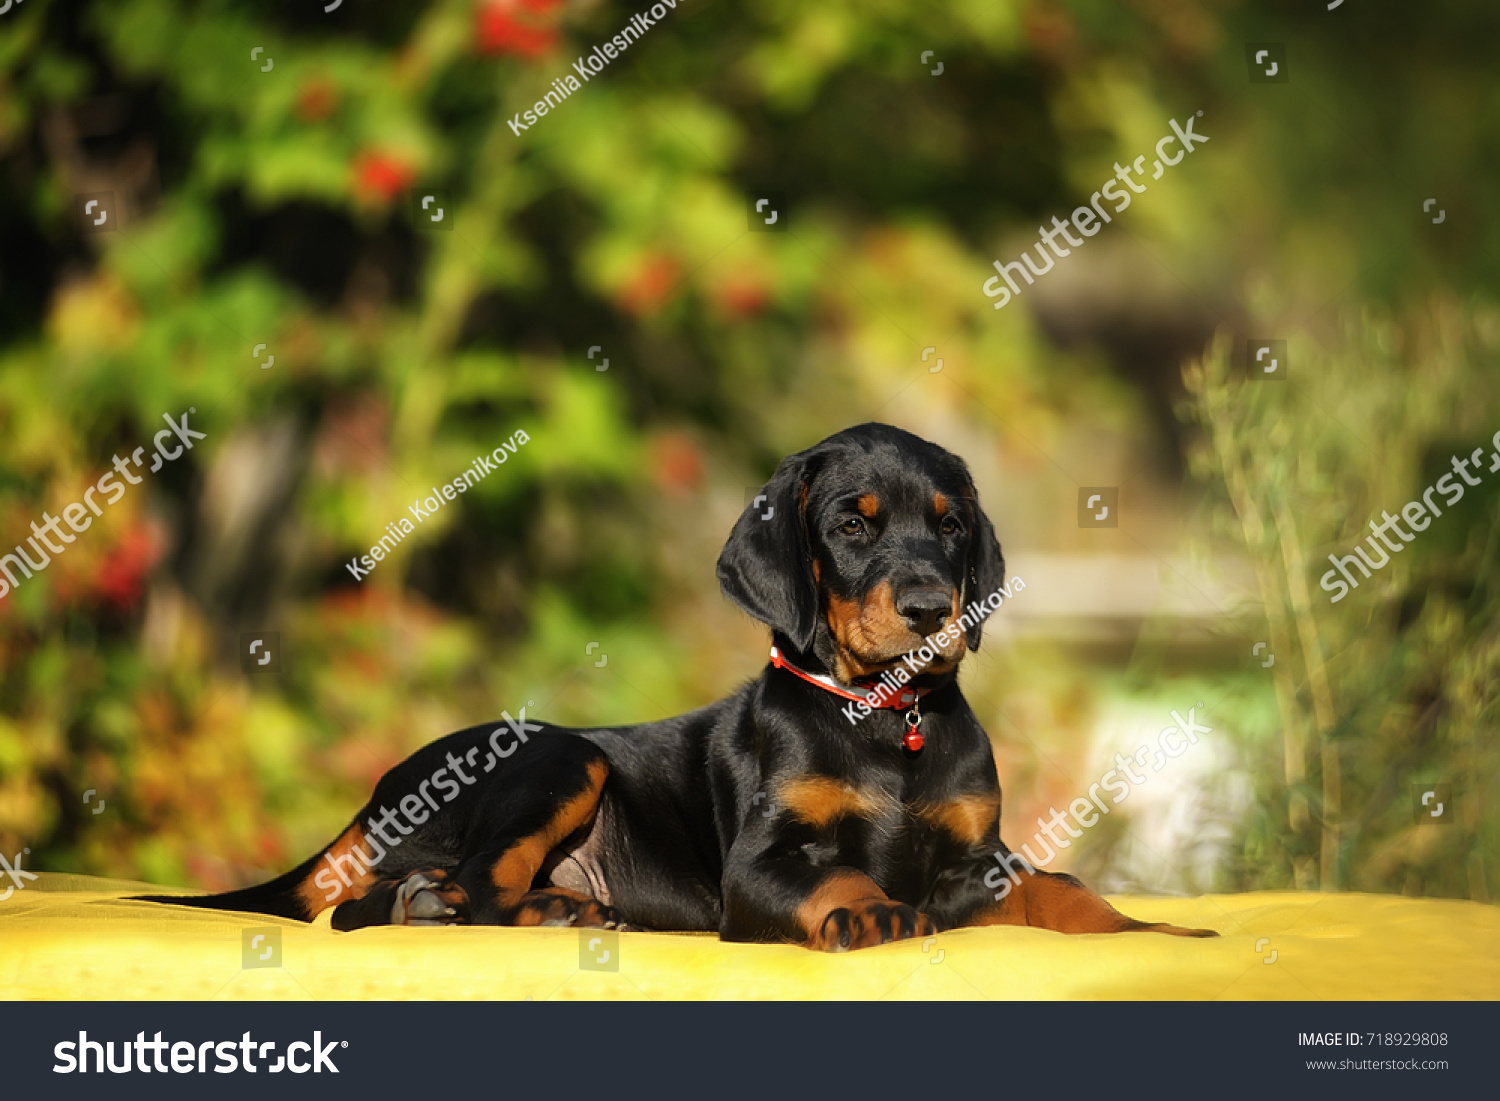 Funny Puppy Doberman Uncropped Ears Lying Stock Photo Edit Now 718929808